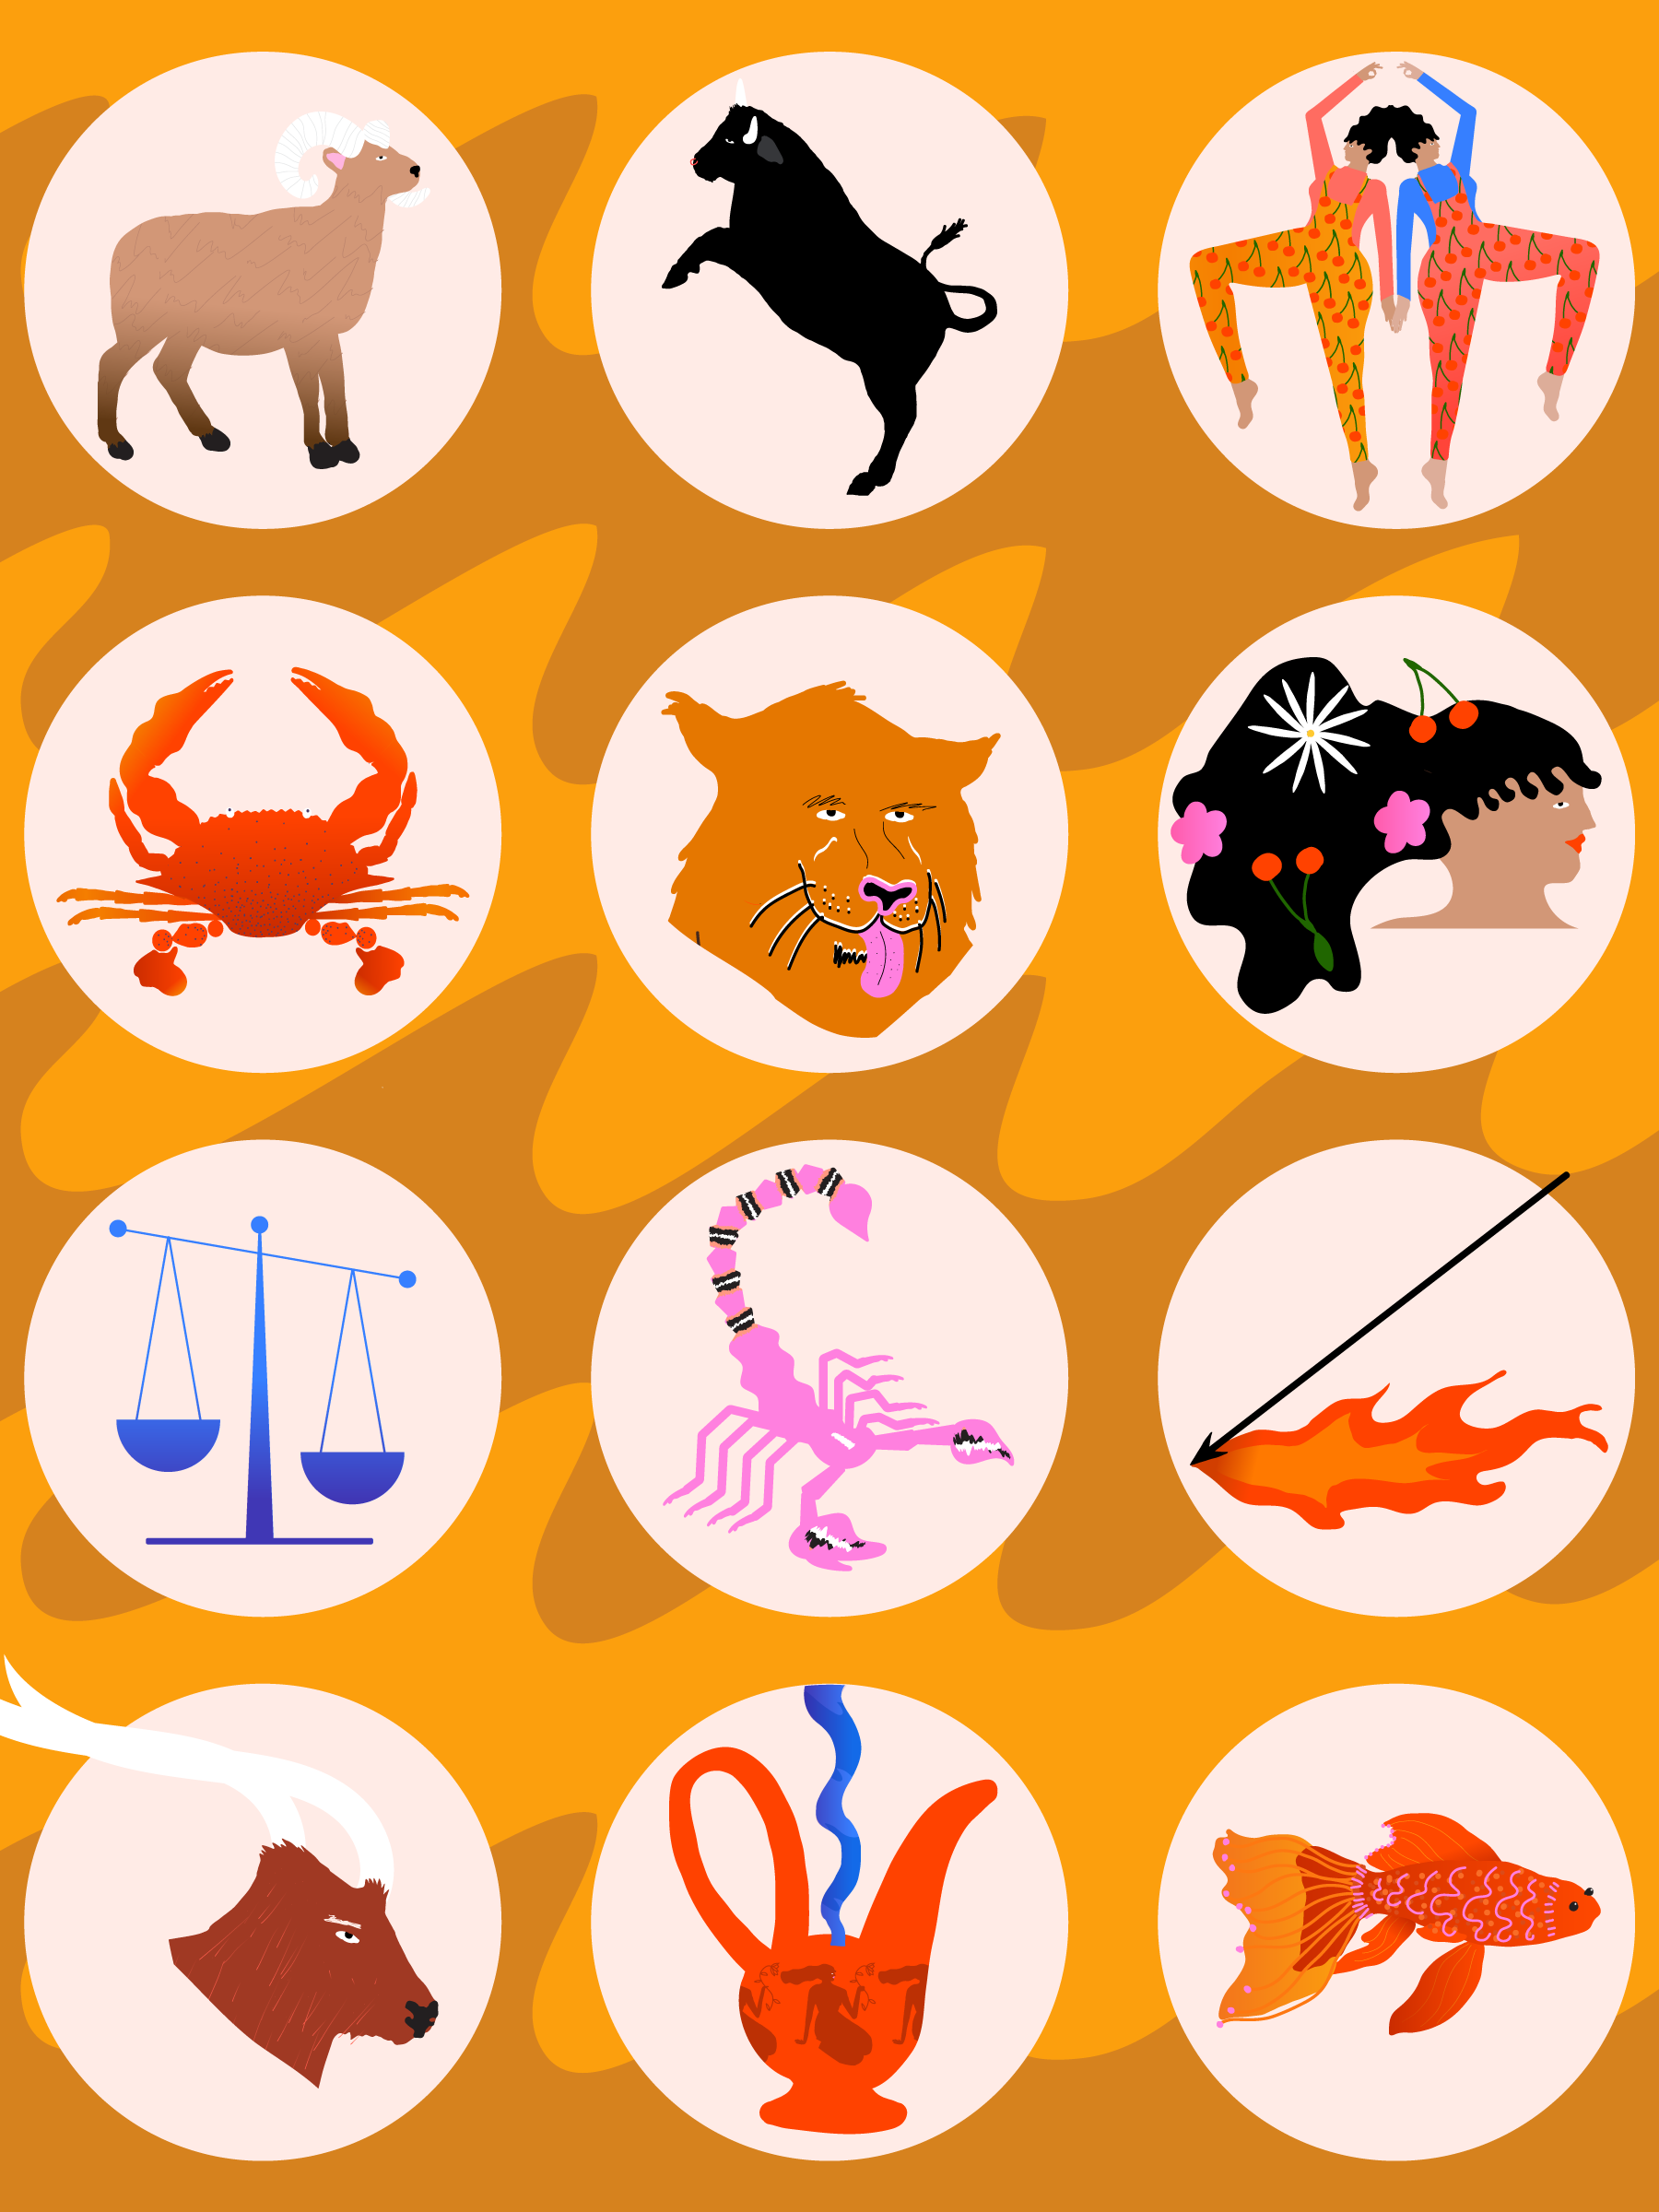 August 2018 Monthly Horoscope By Zodiac Sign